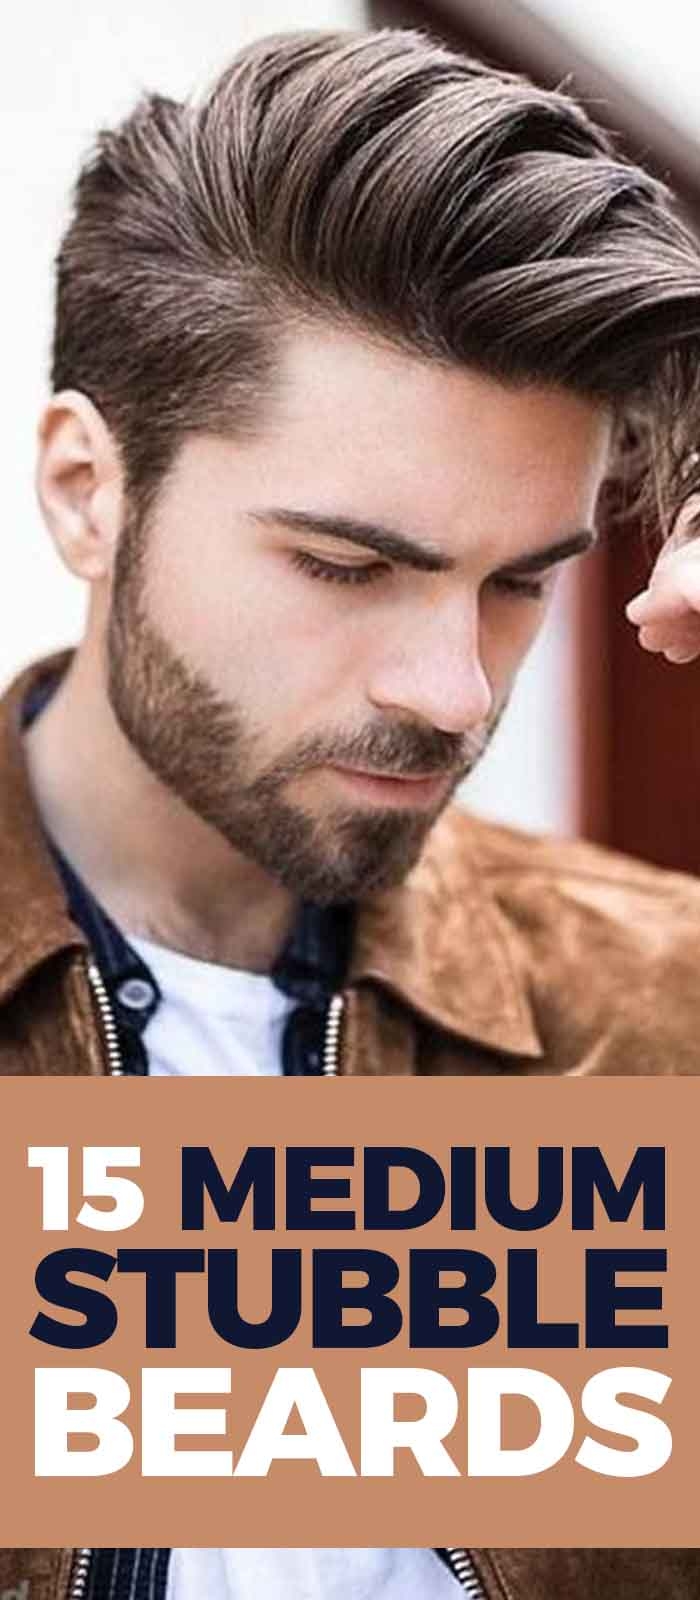 Brown Jacket Look For men With Medium Stubble Beard!